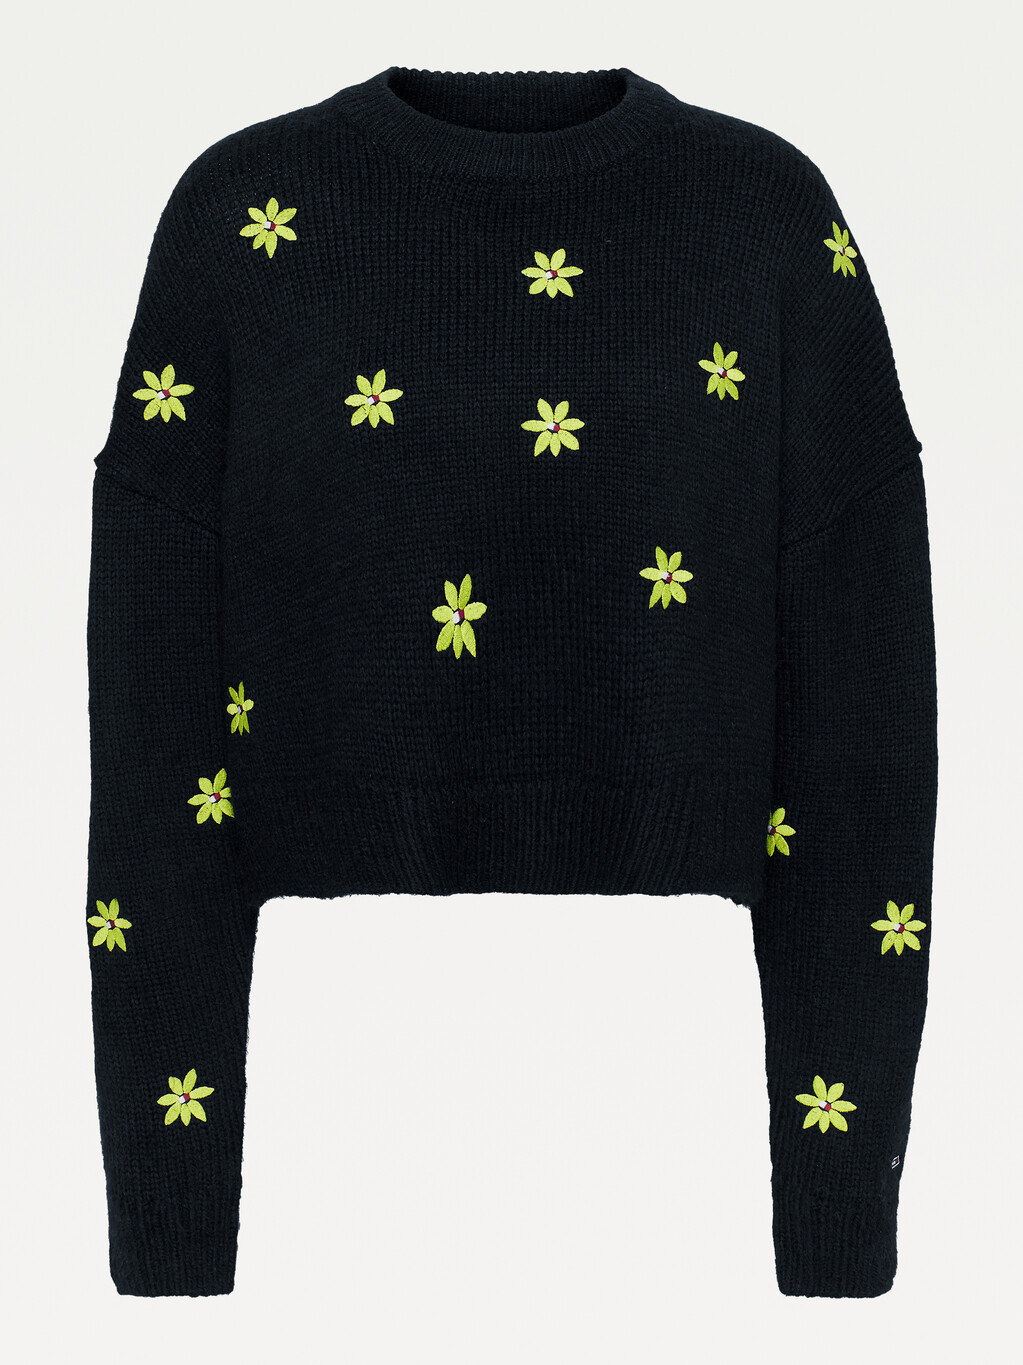 Floral Embroidery Jumper